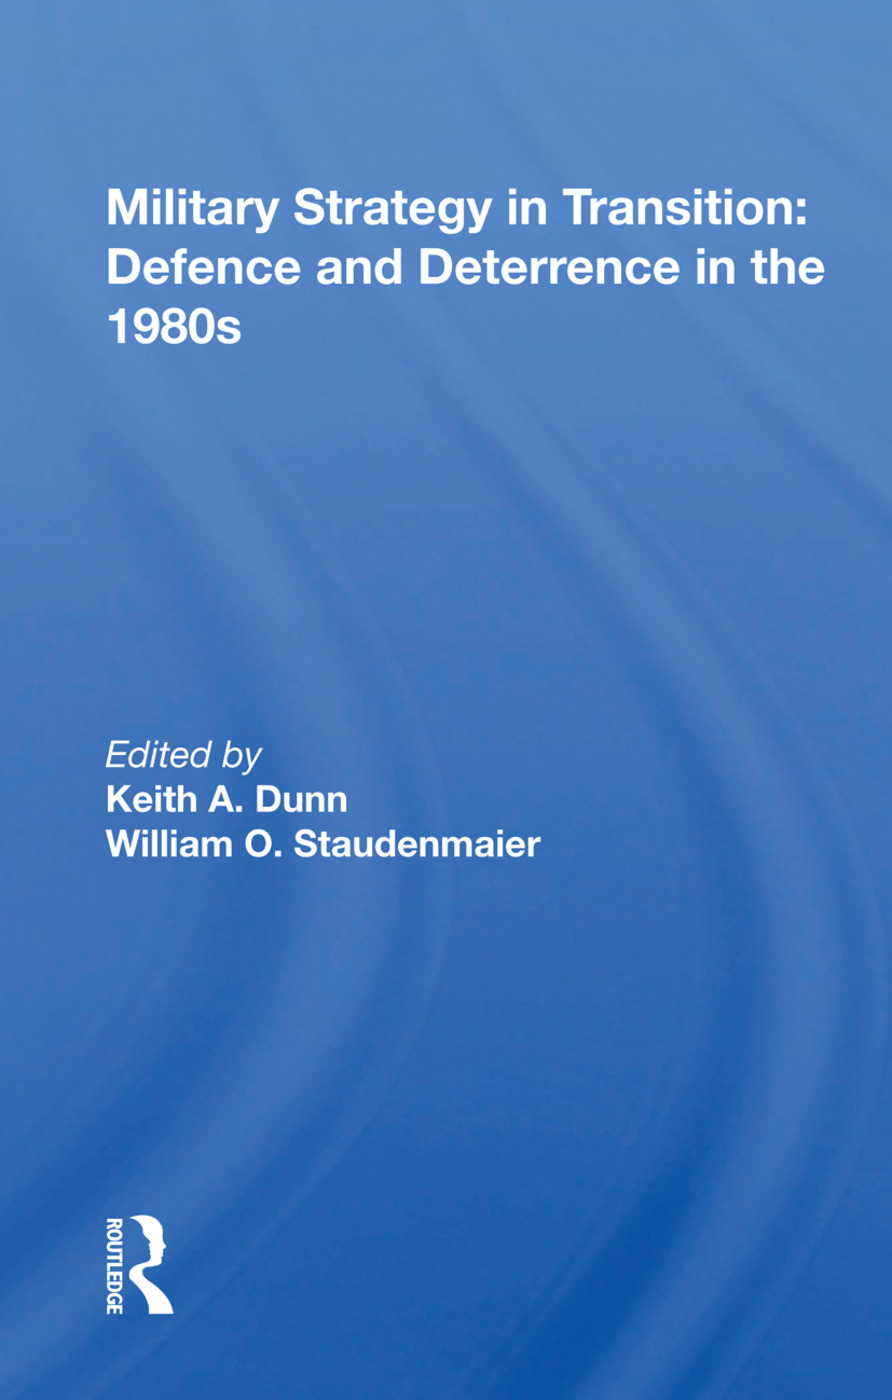 Military Strategy in Transition: Defense and Deterrence in the 1980s book cover